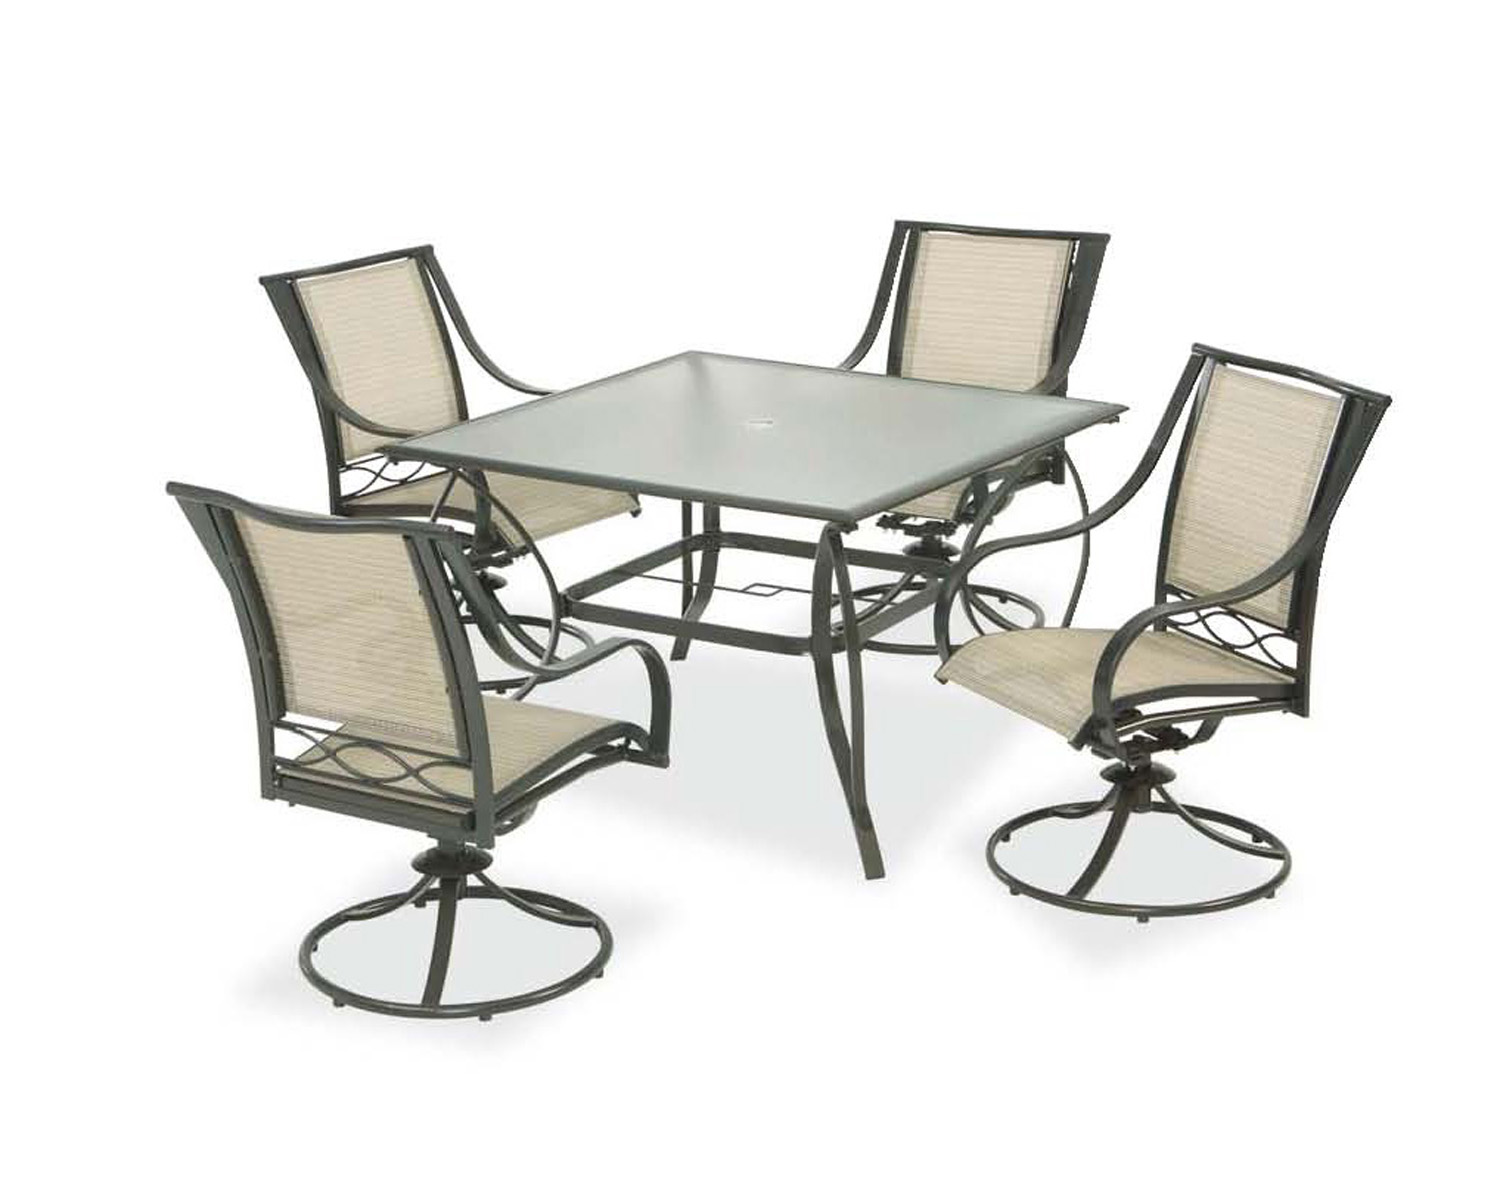 high chairs canada reviews steel chair frame suppliers casual living worldwide recalls swivel patio due to